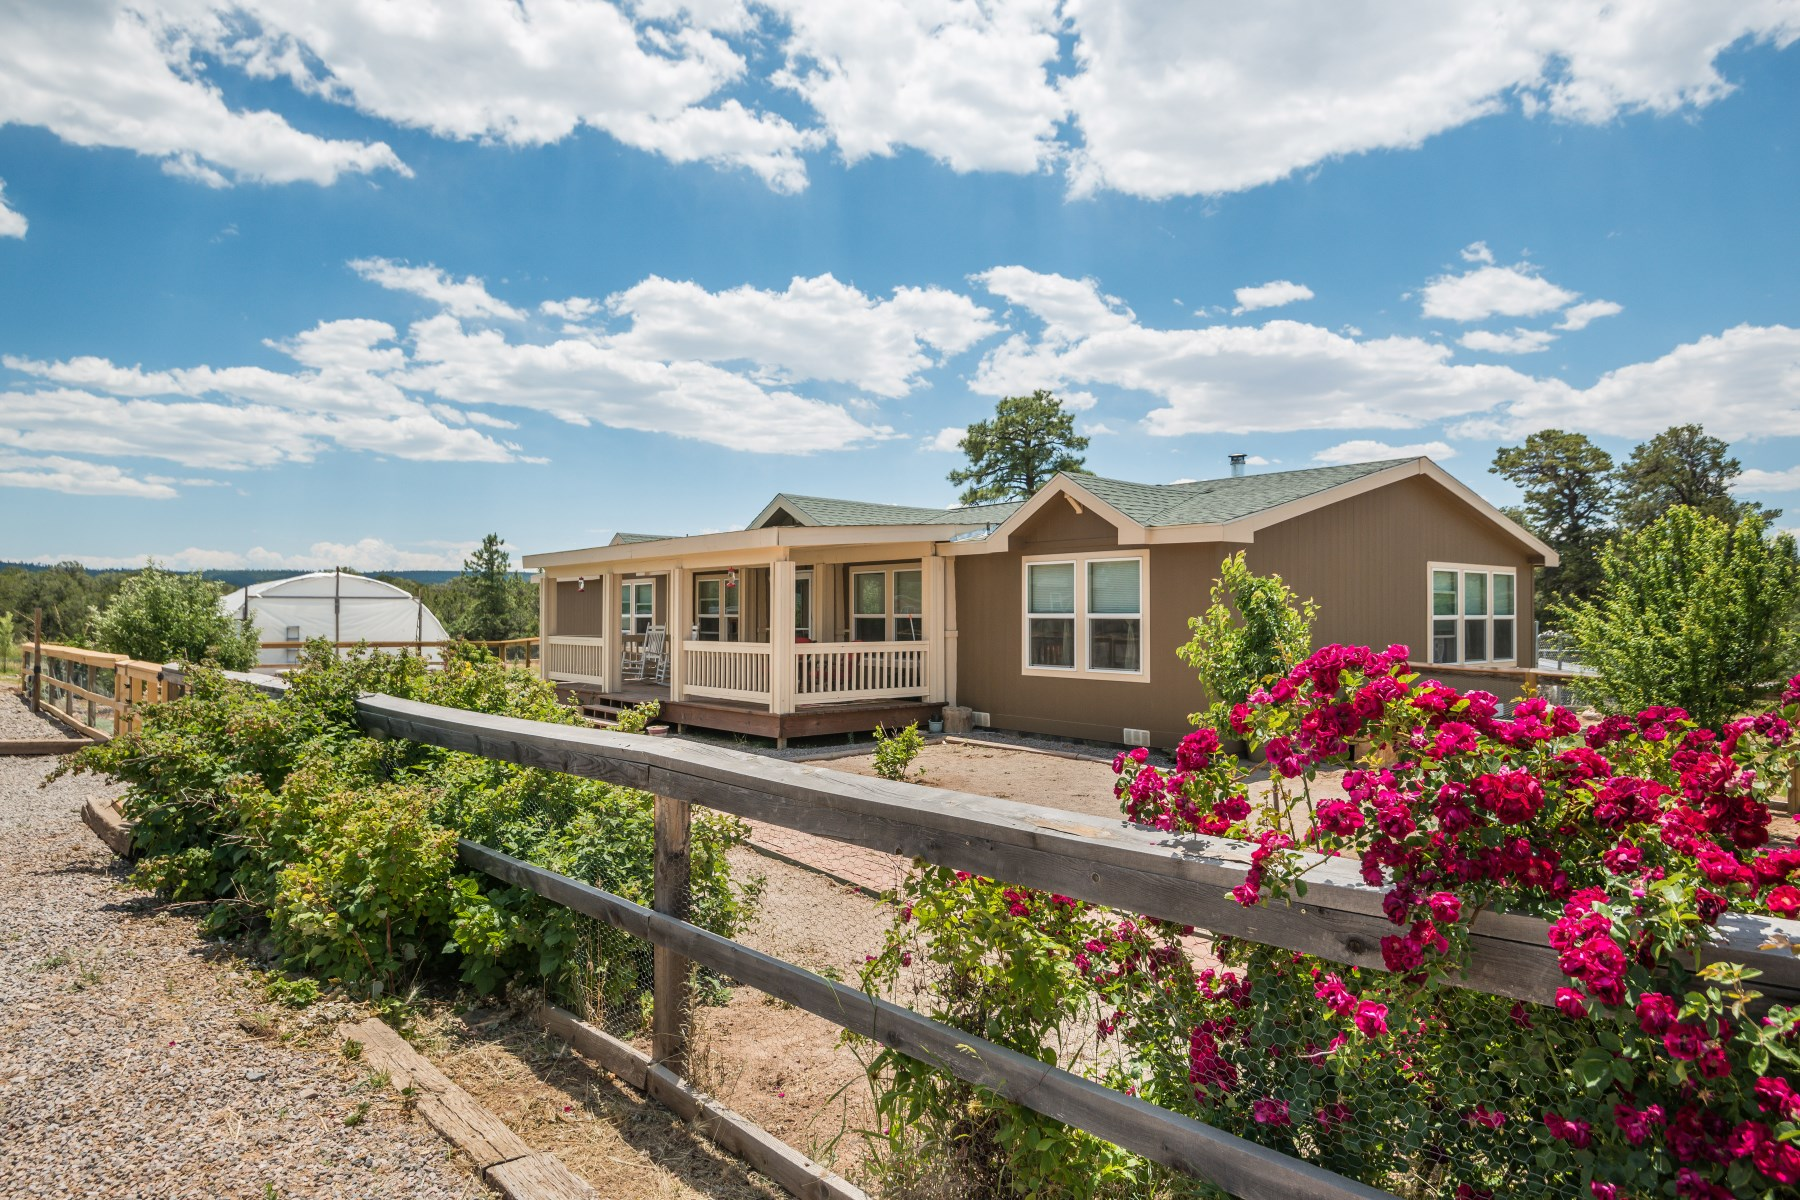 Single Family Home for Sale at 243976 US Highway 84 24397 Highway 84, Cebolla, New Mexico, 87518 United States